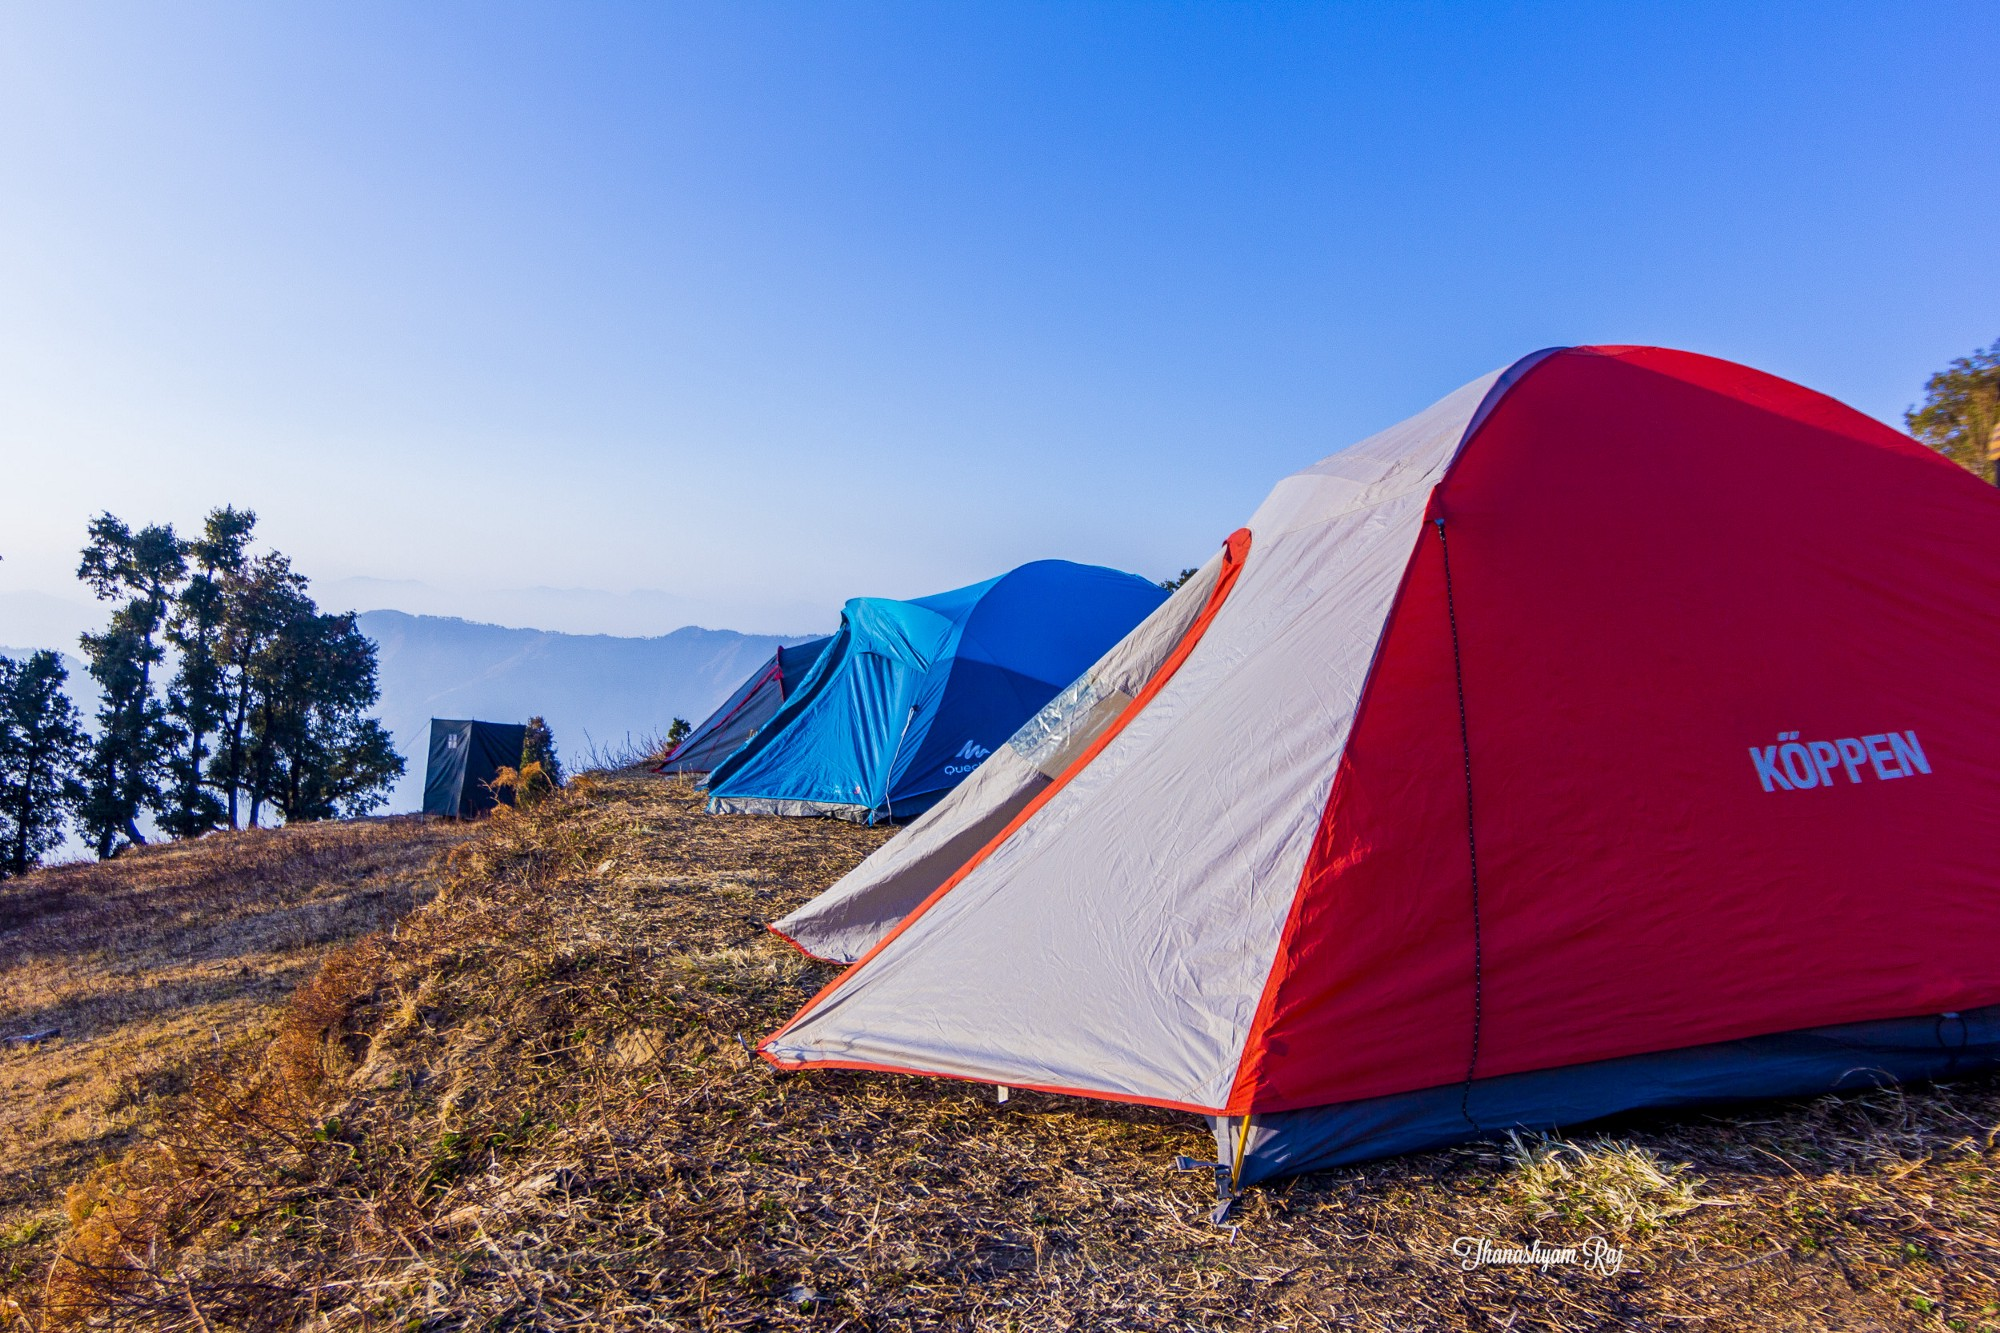 And that one day when you find it the most difficult to control is when the toilet tents are pitched farthest from your tent. & Toughest thing to do on a Winter trek and how to go about it